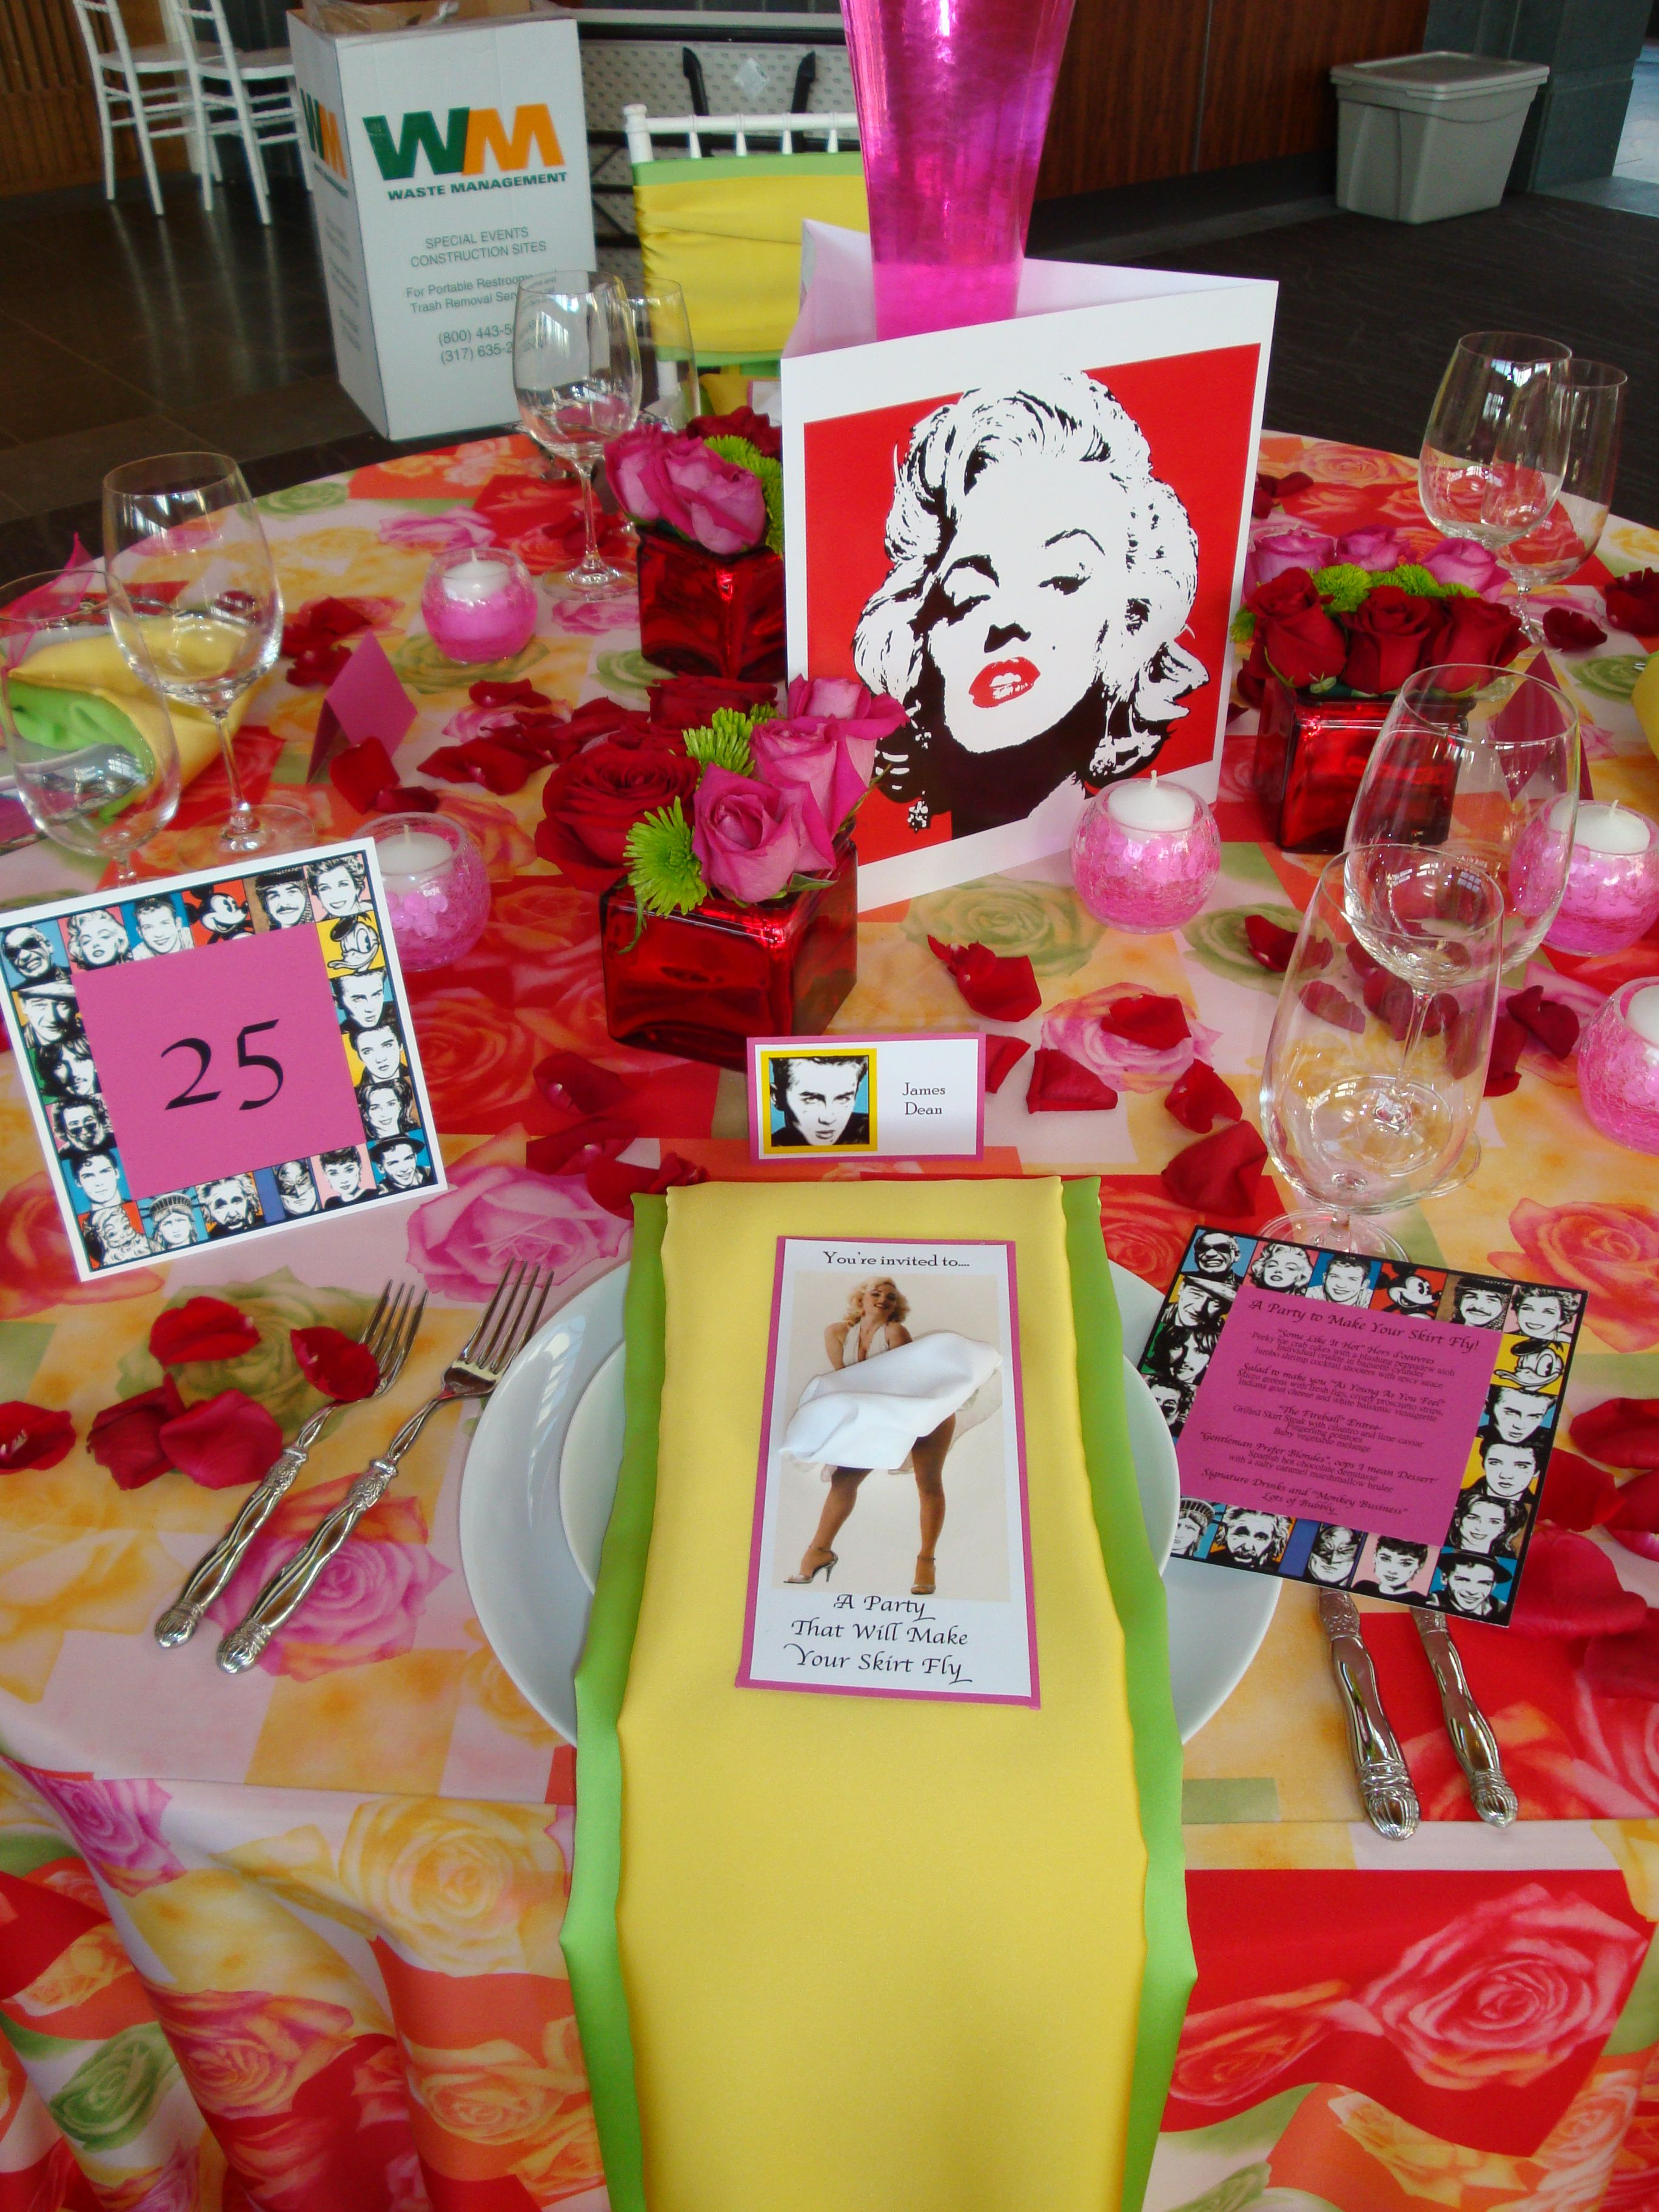 Marilyn Monroe Party A Party To Make Your Skirt Fly